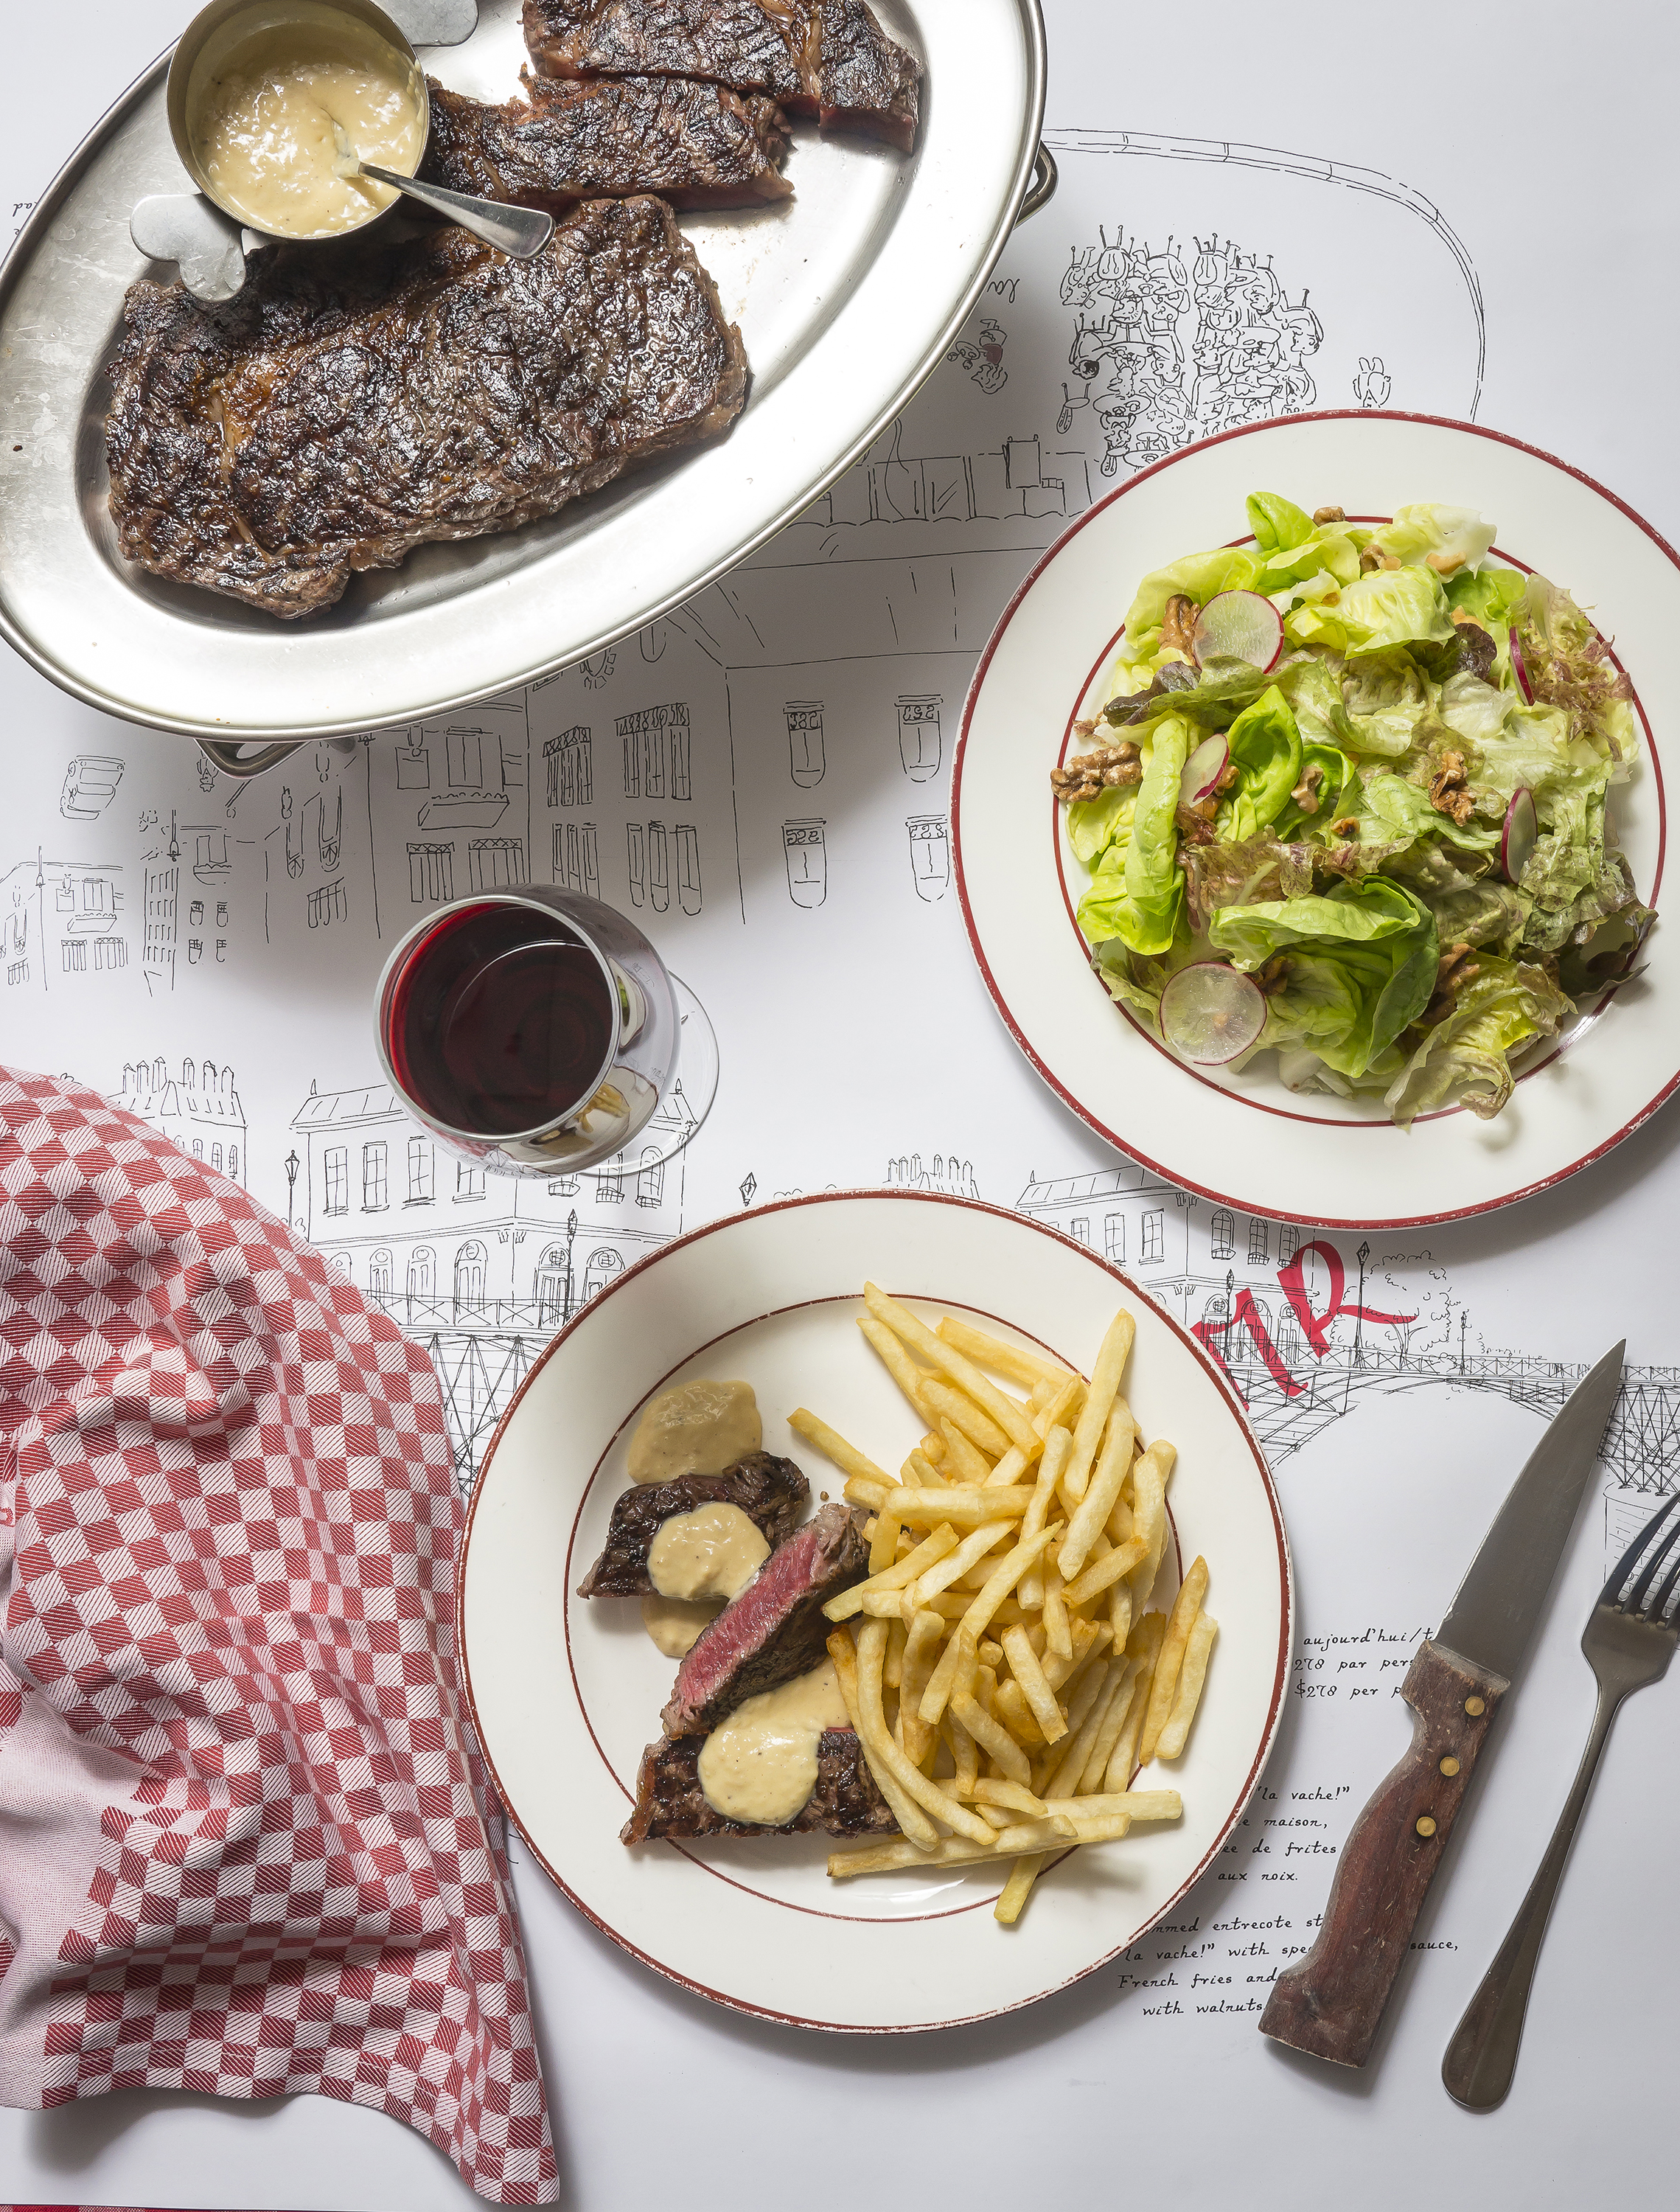 The signature ribeye steak with salad and fries